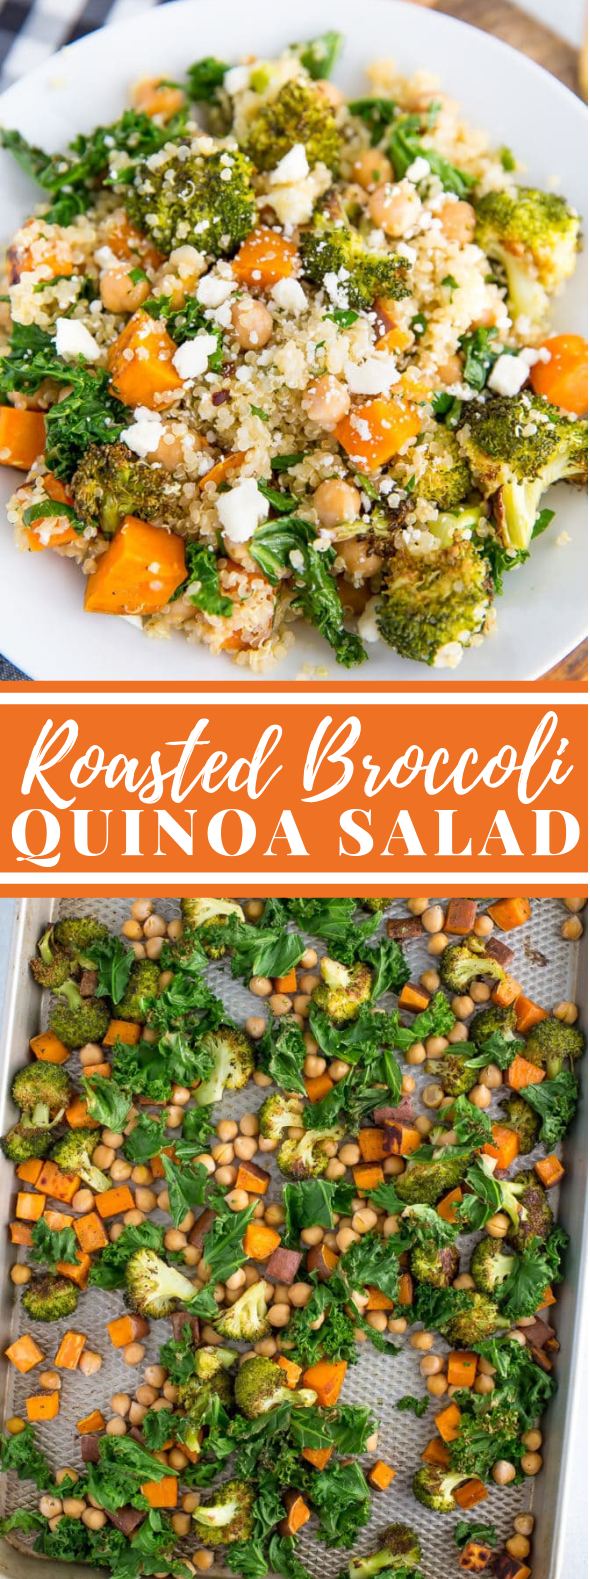 Roasted Broccoli Quinoa Salad #vegetarian #lunch